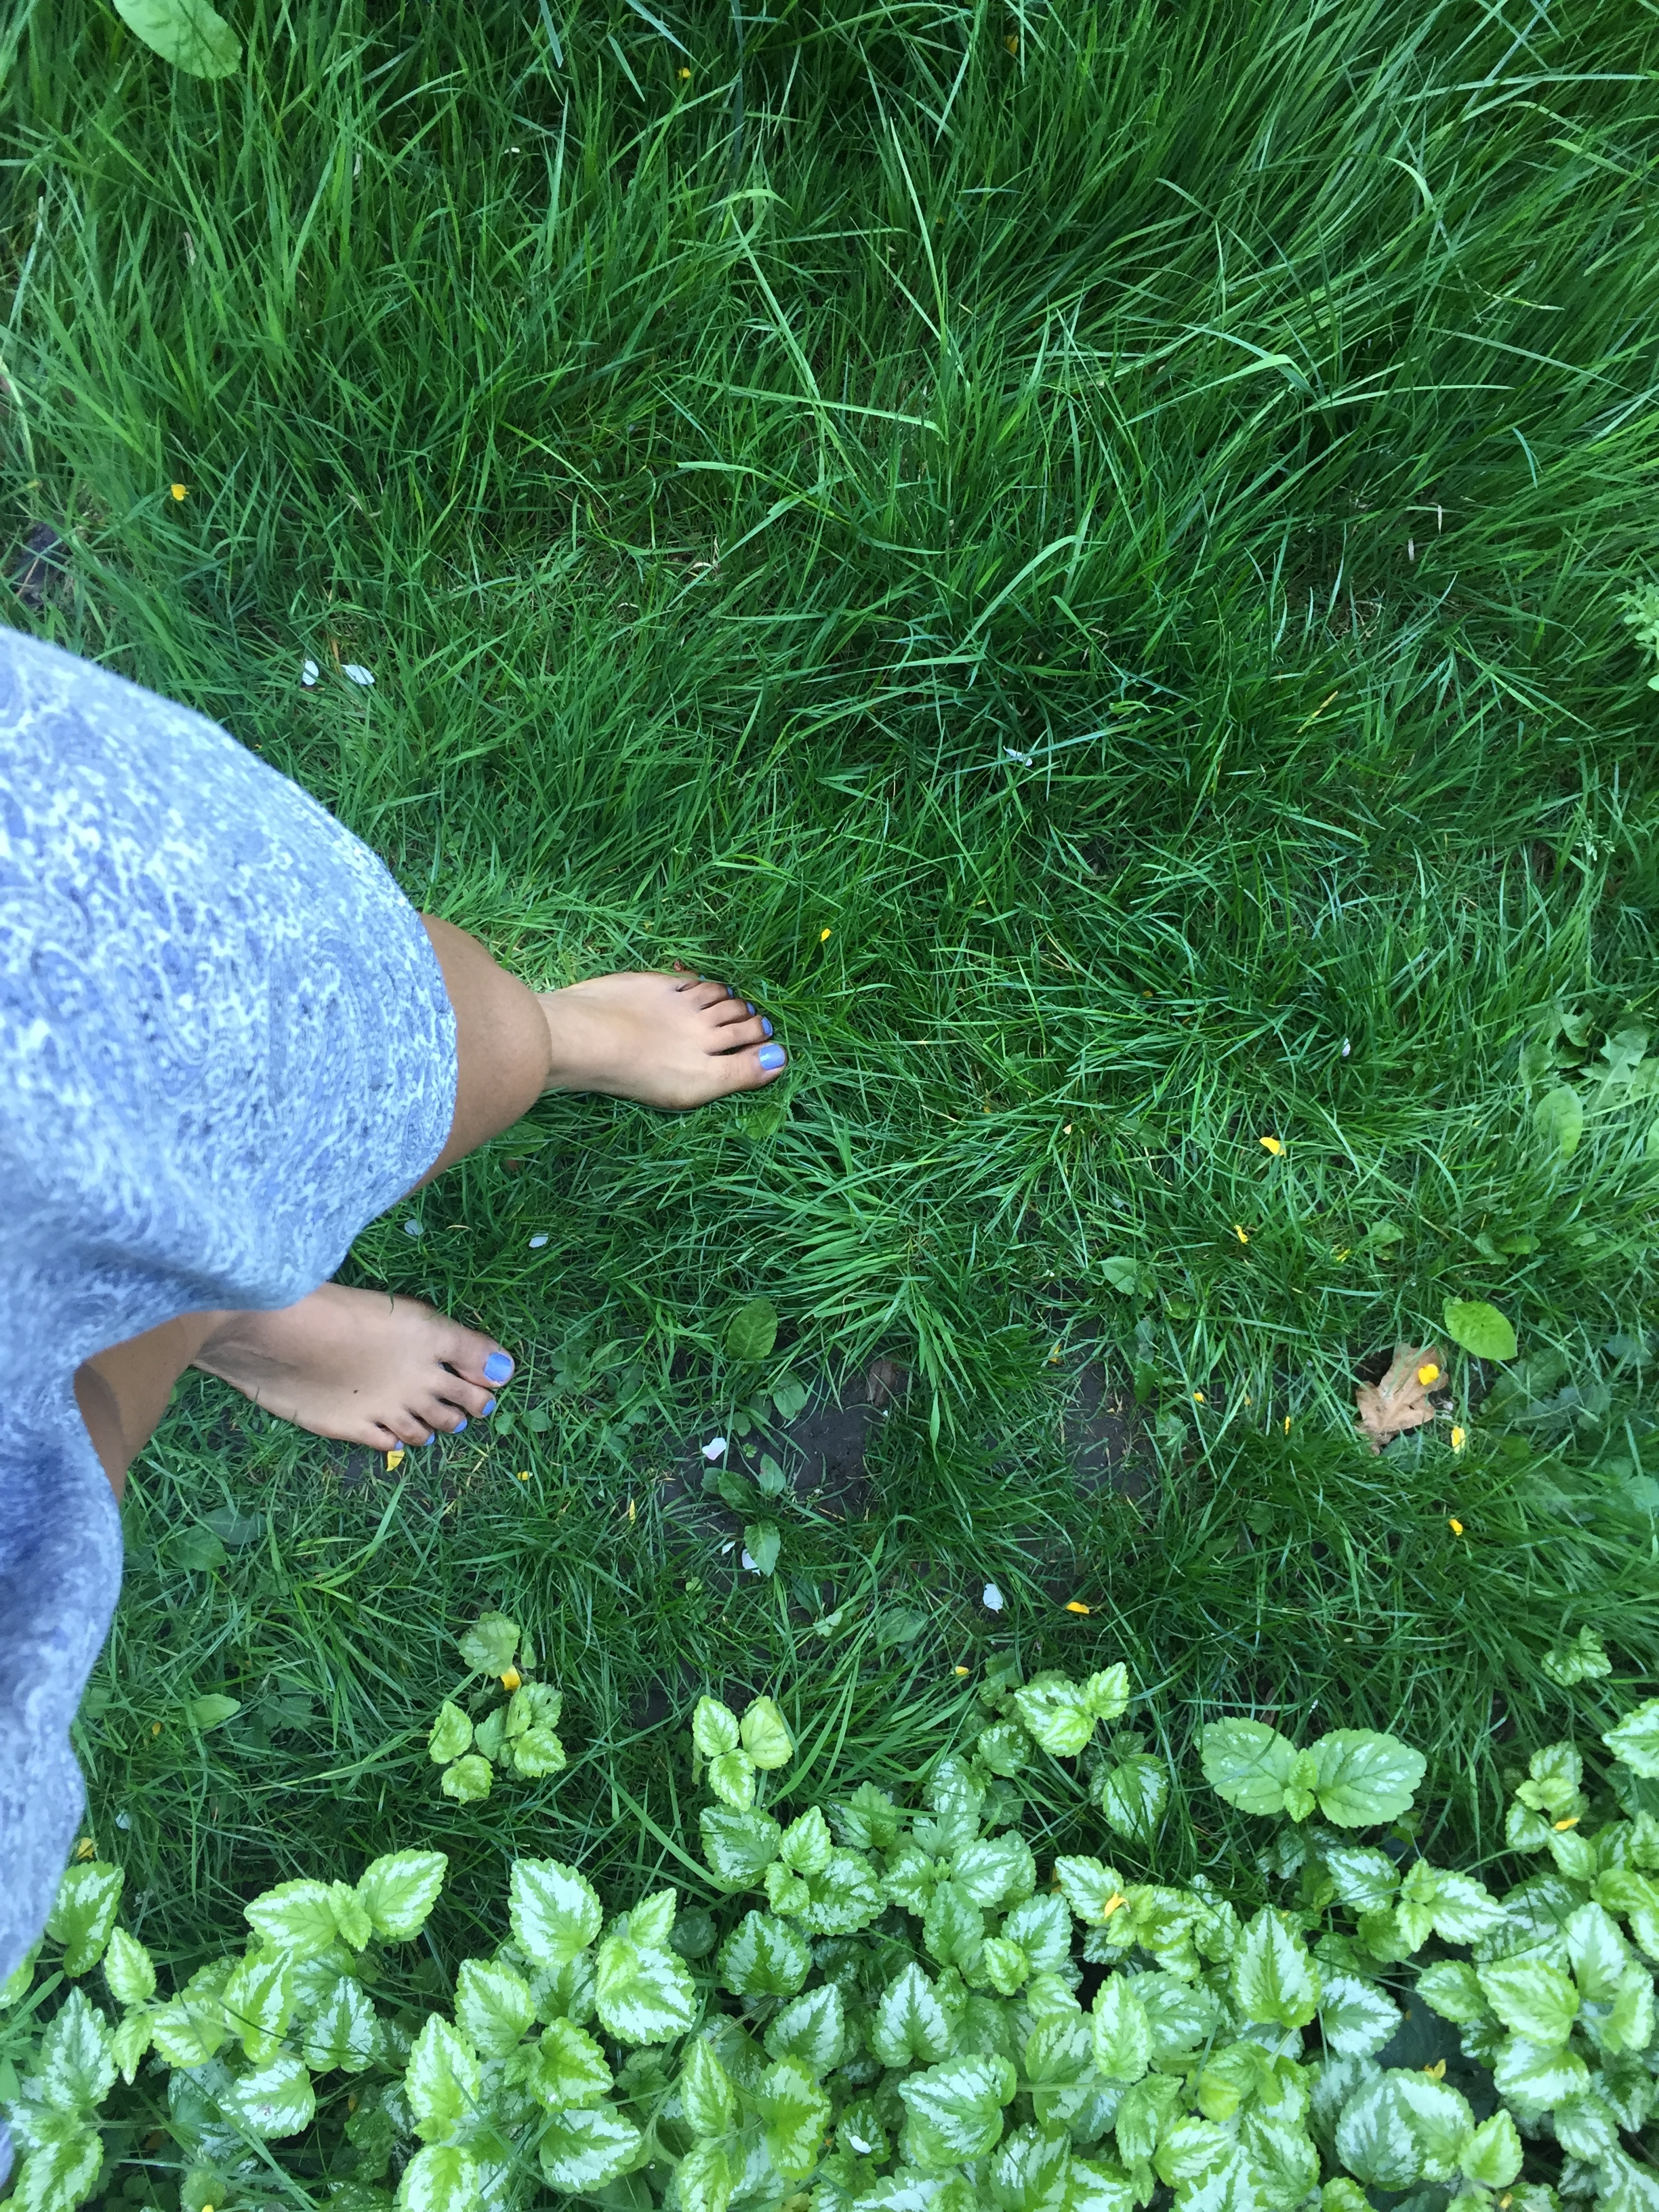 Meditative practice of earthing in my old backyard out in London. Time being out in nature has become crucial for me.